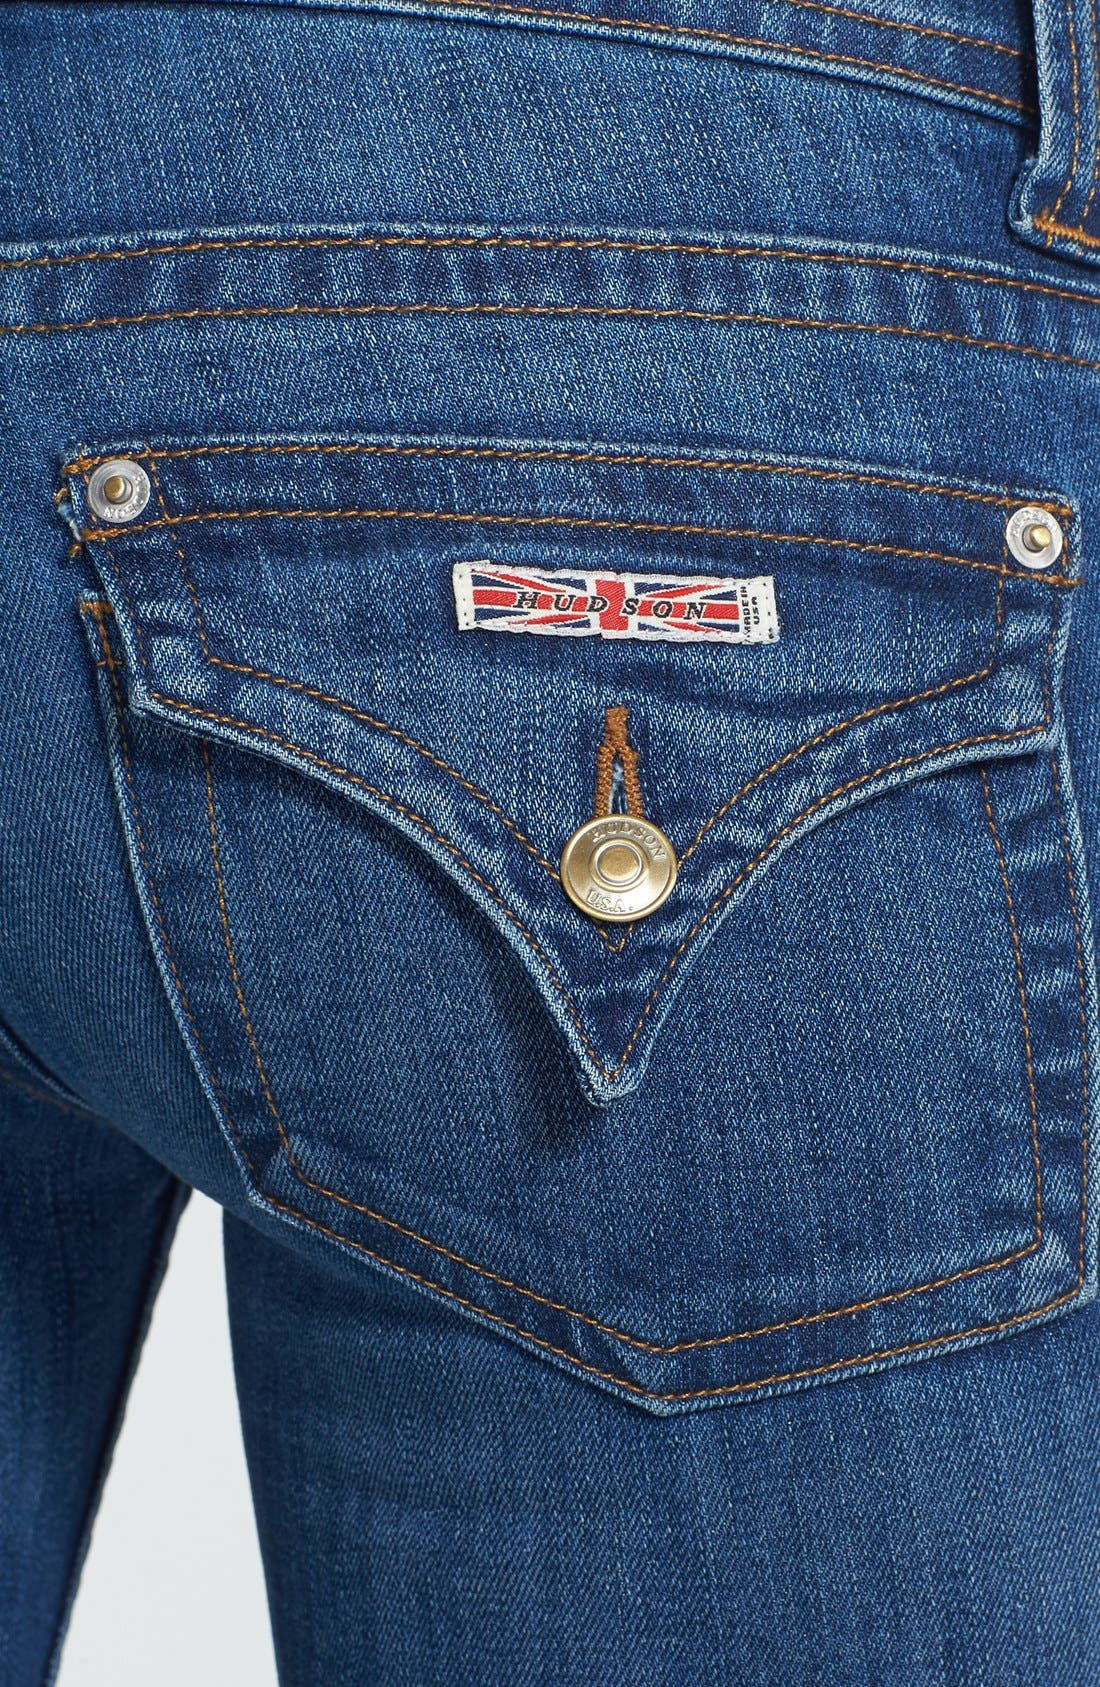 Alternate Image 3  - Hudson Jeans Signature Bootcut Jeans (Watchtower)